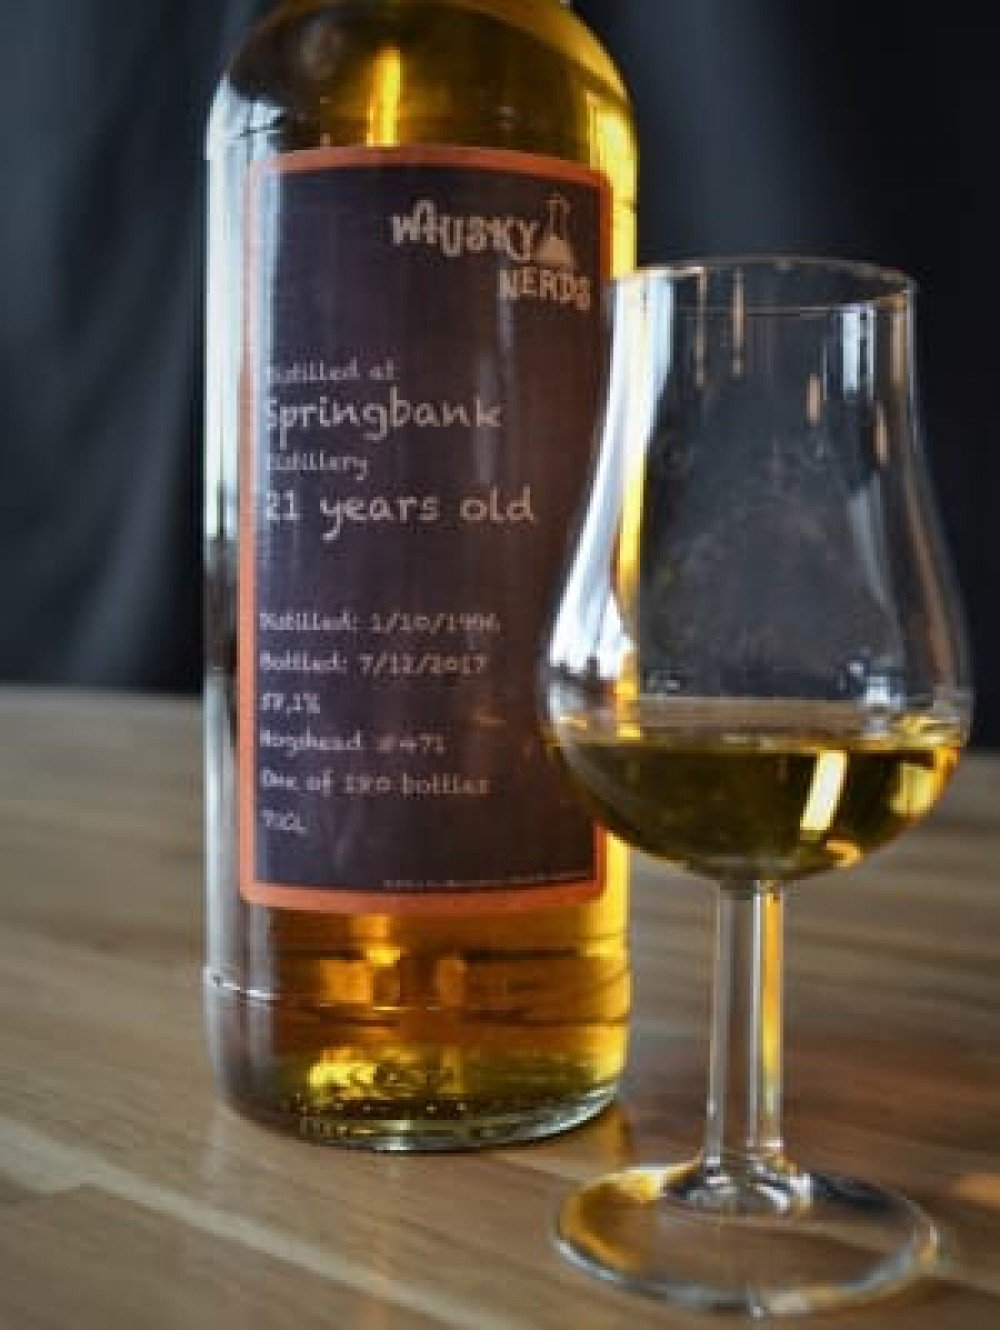 For real Nerds only - Springbank 21